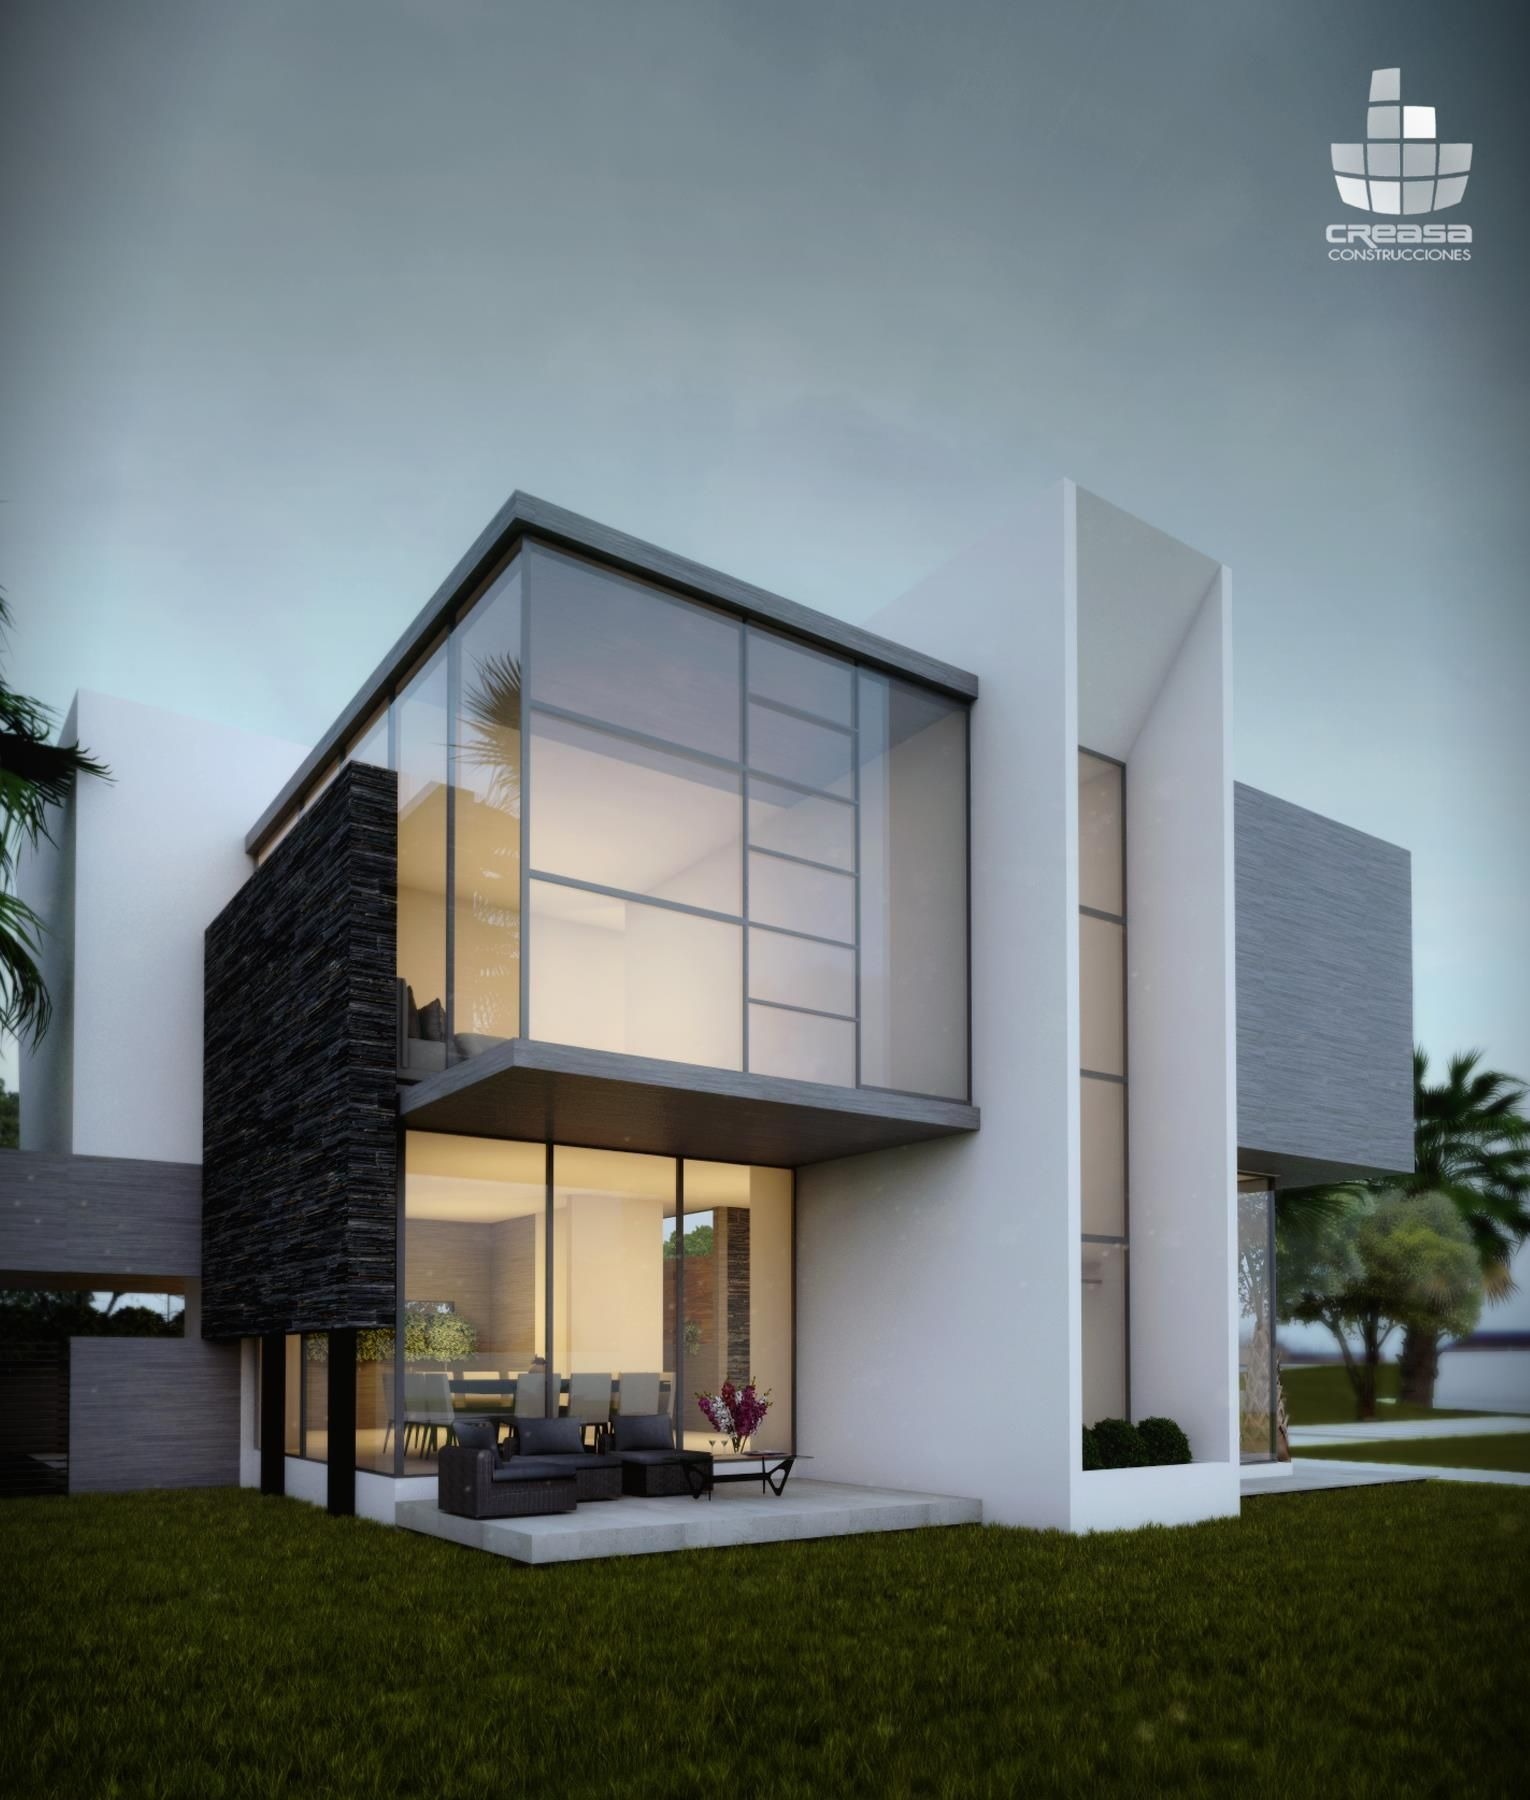 Creasa modern architecture pinterest villas house for Simple but modern house design